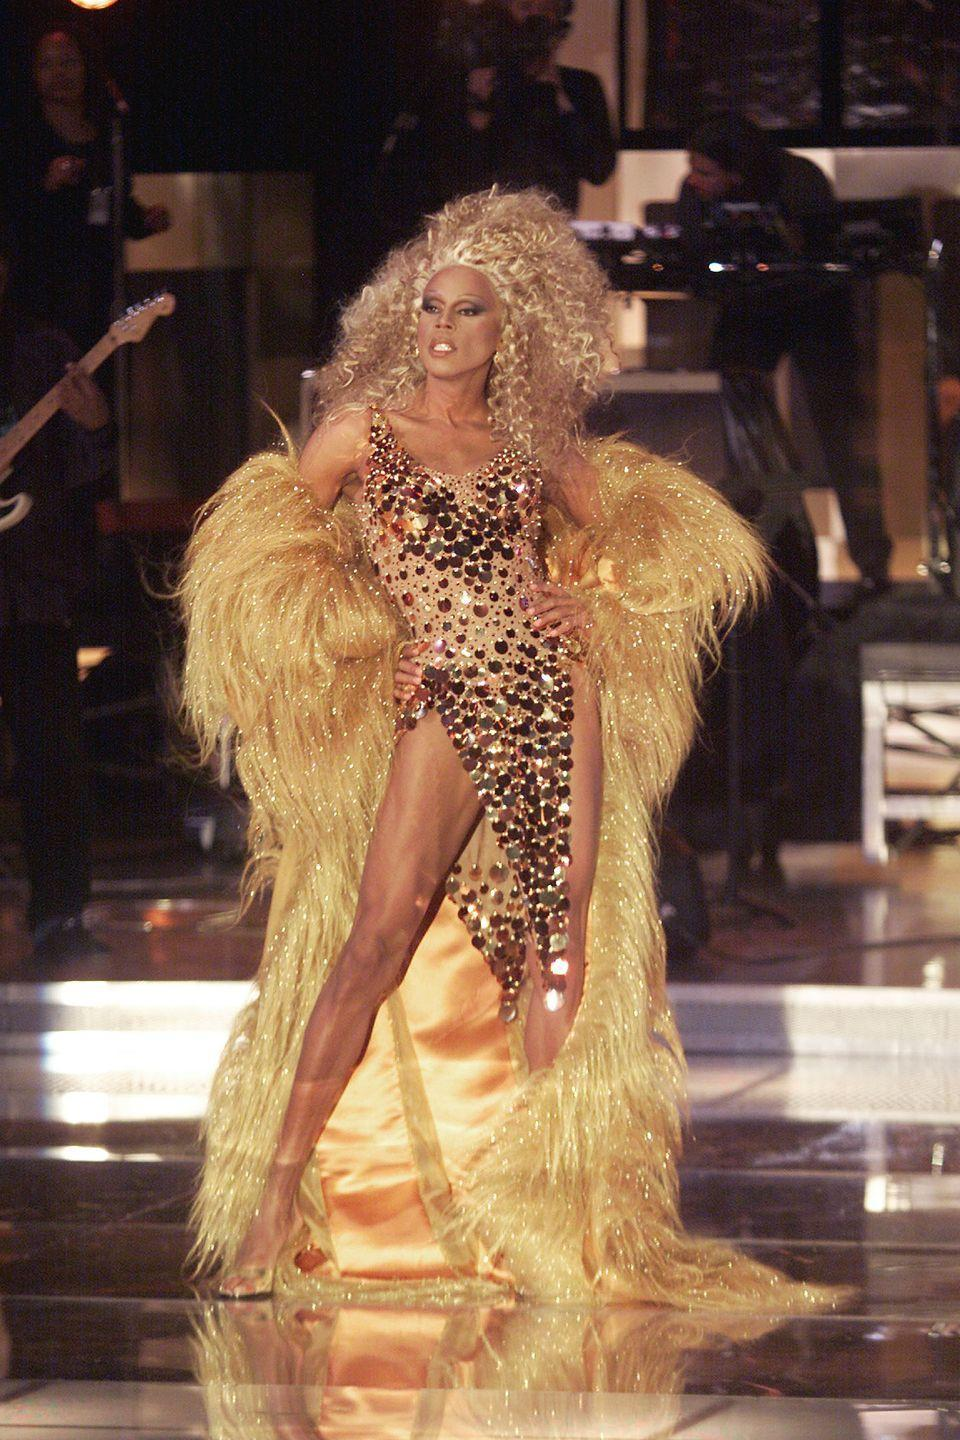 <p>If you are going to pay tribute to Diana Ross, you better show up looking over-the-top amazing, and RuPaul hit that challenge out of the park. This <em>VH1 Divas 2000</em> ensemble had gold, glitter, features and a massive lioness wig. </p>